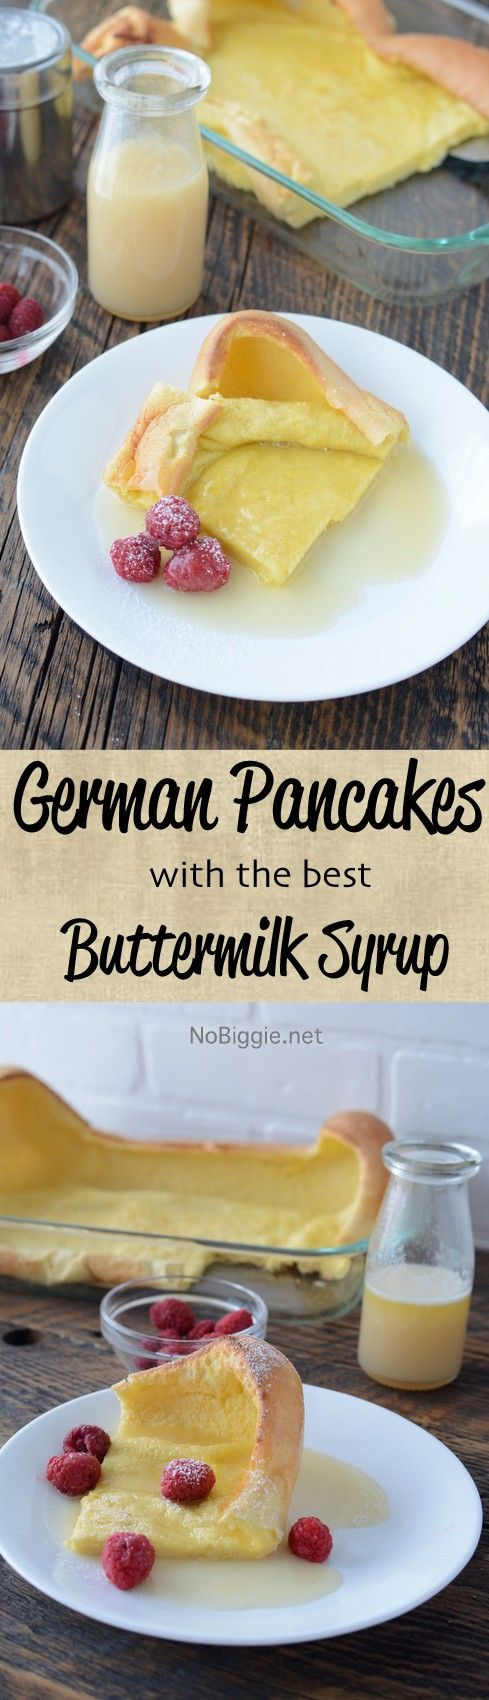 German Pancakes with the best buttermilk syrup | NoBiggie.net